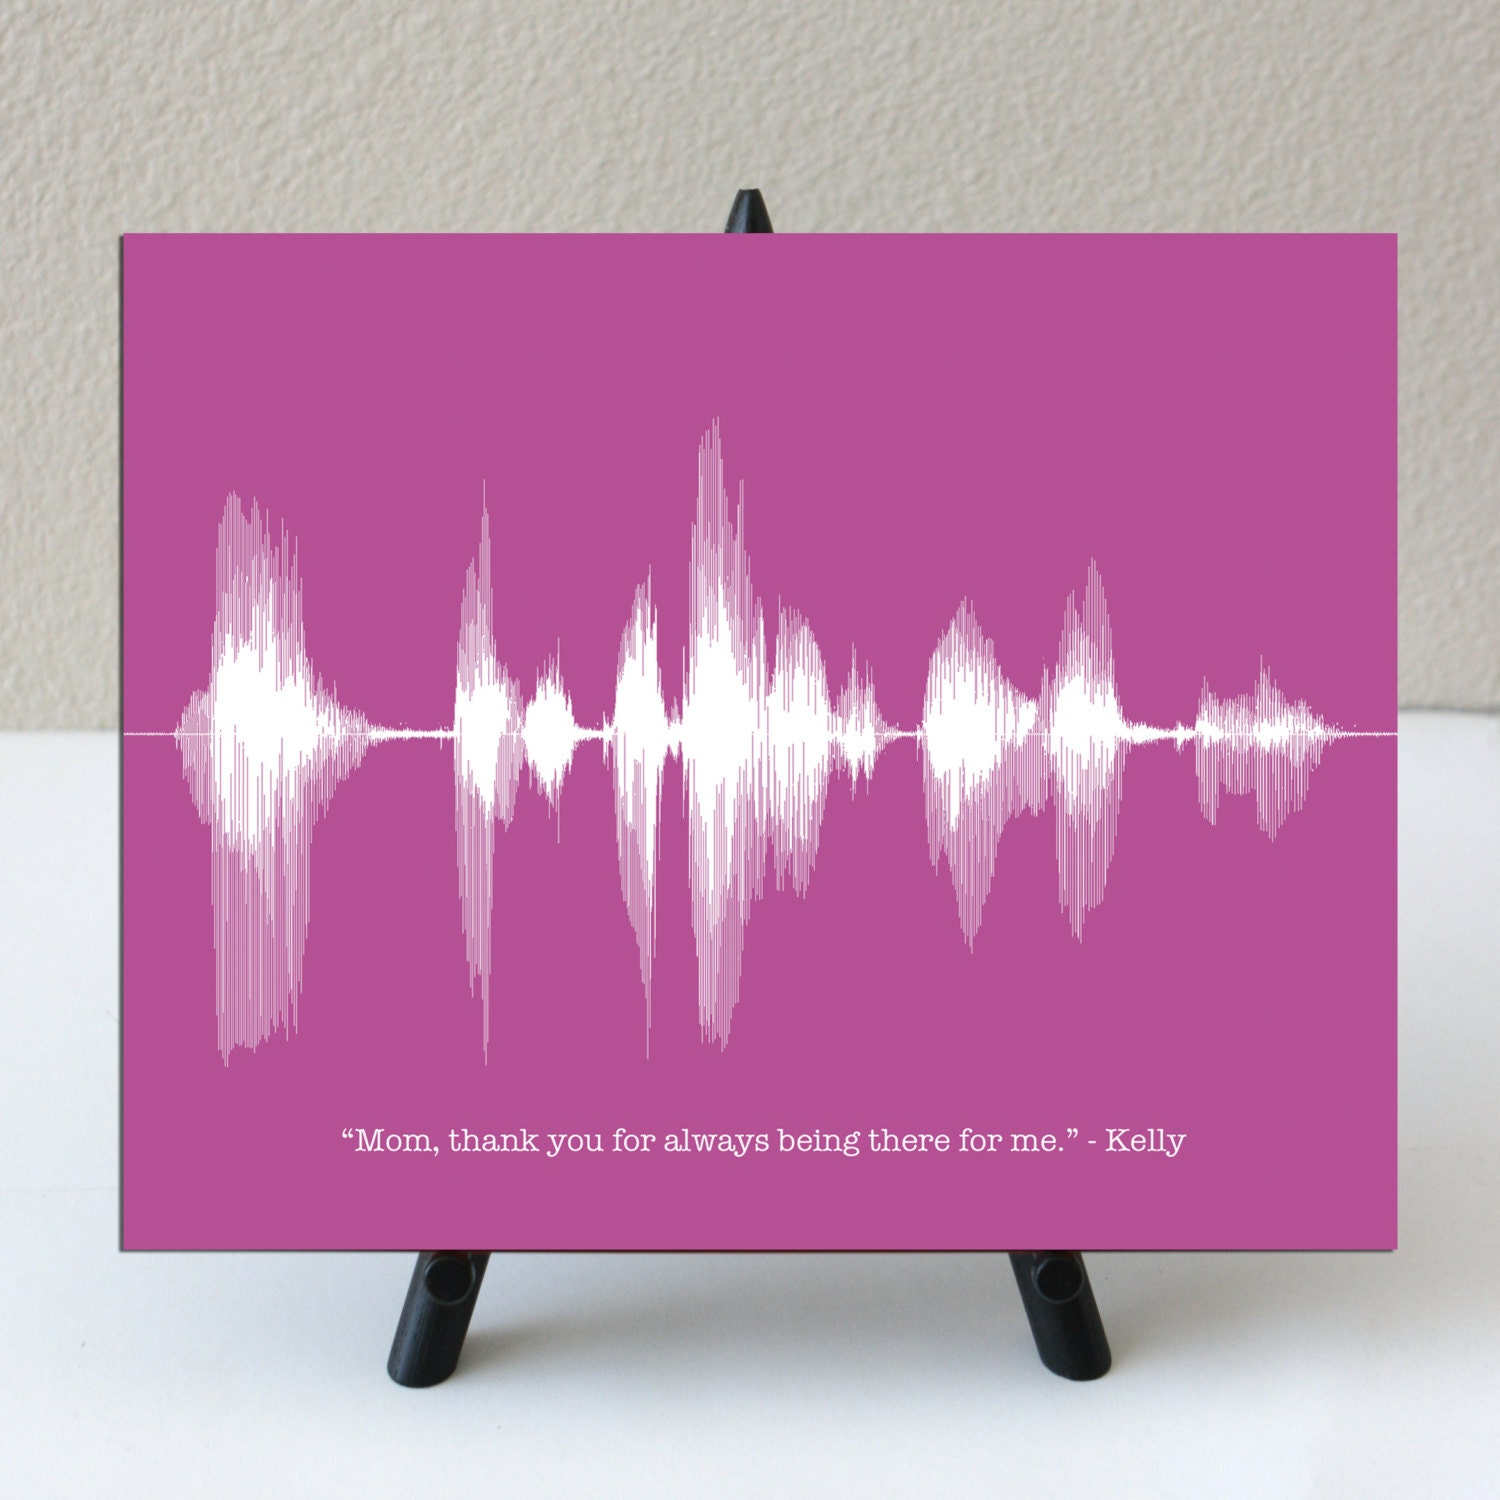 8x10 Your Voice Message into Sound Wave Art - Personalized Mother's Day Gift for Mom, Grandma - Artboard Mounted Archival Paper Giclee Print